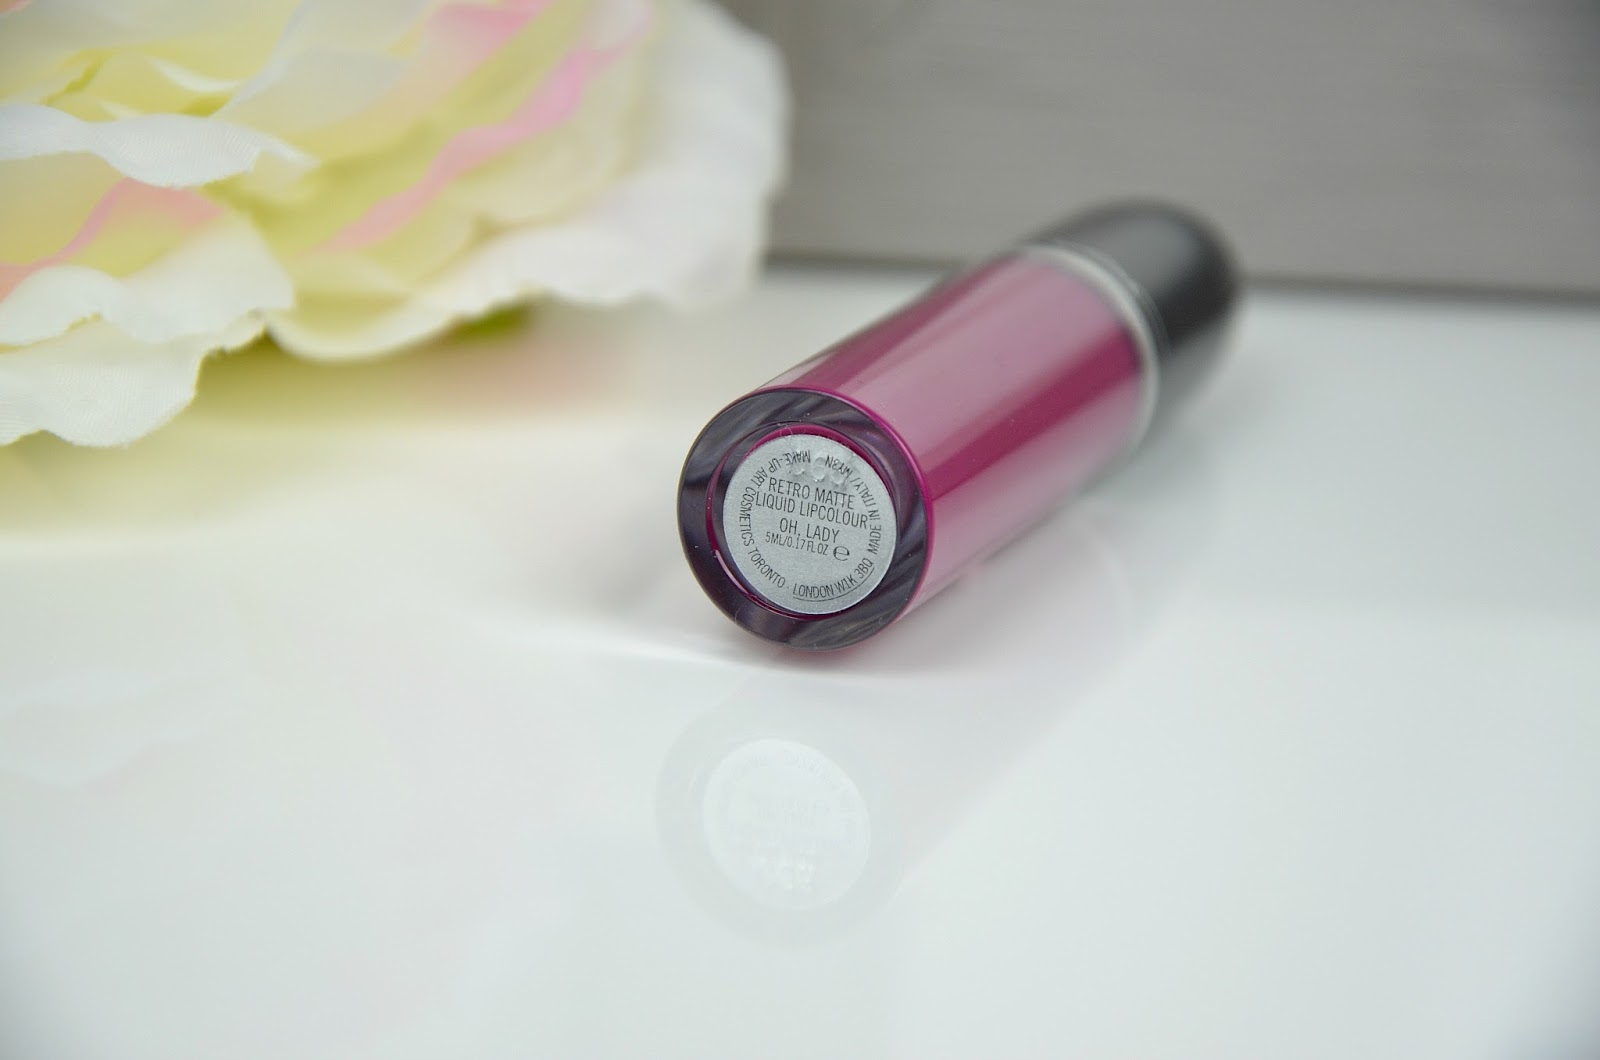 Oh, Lady Retro matte liquid lipcolour MAC revue